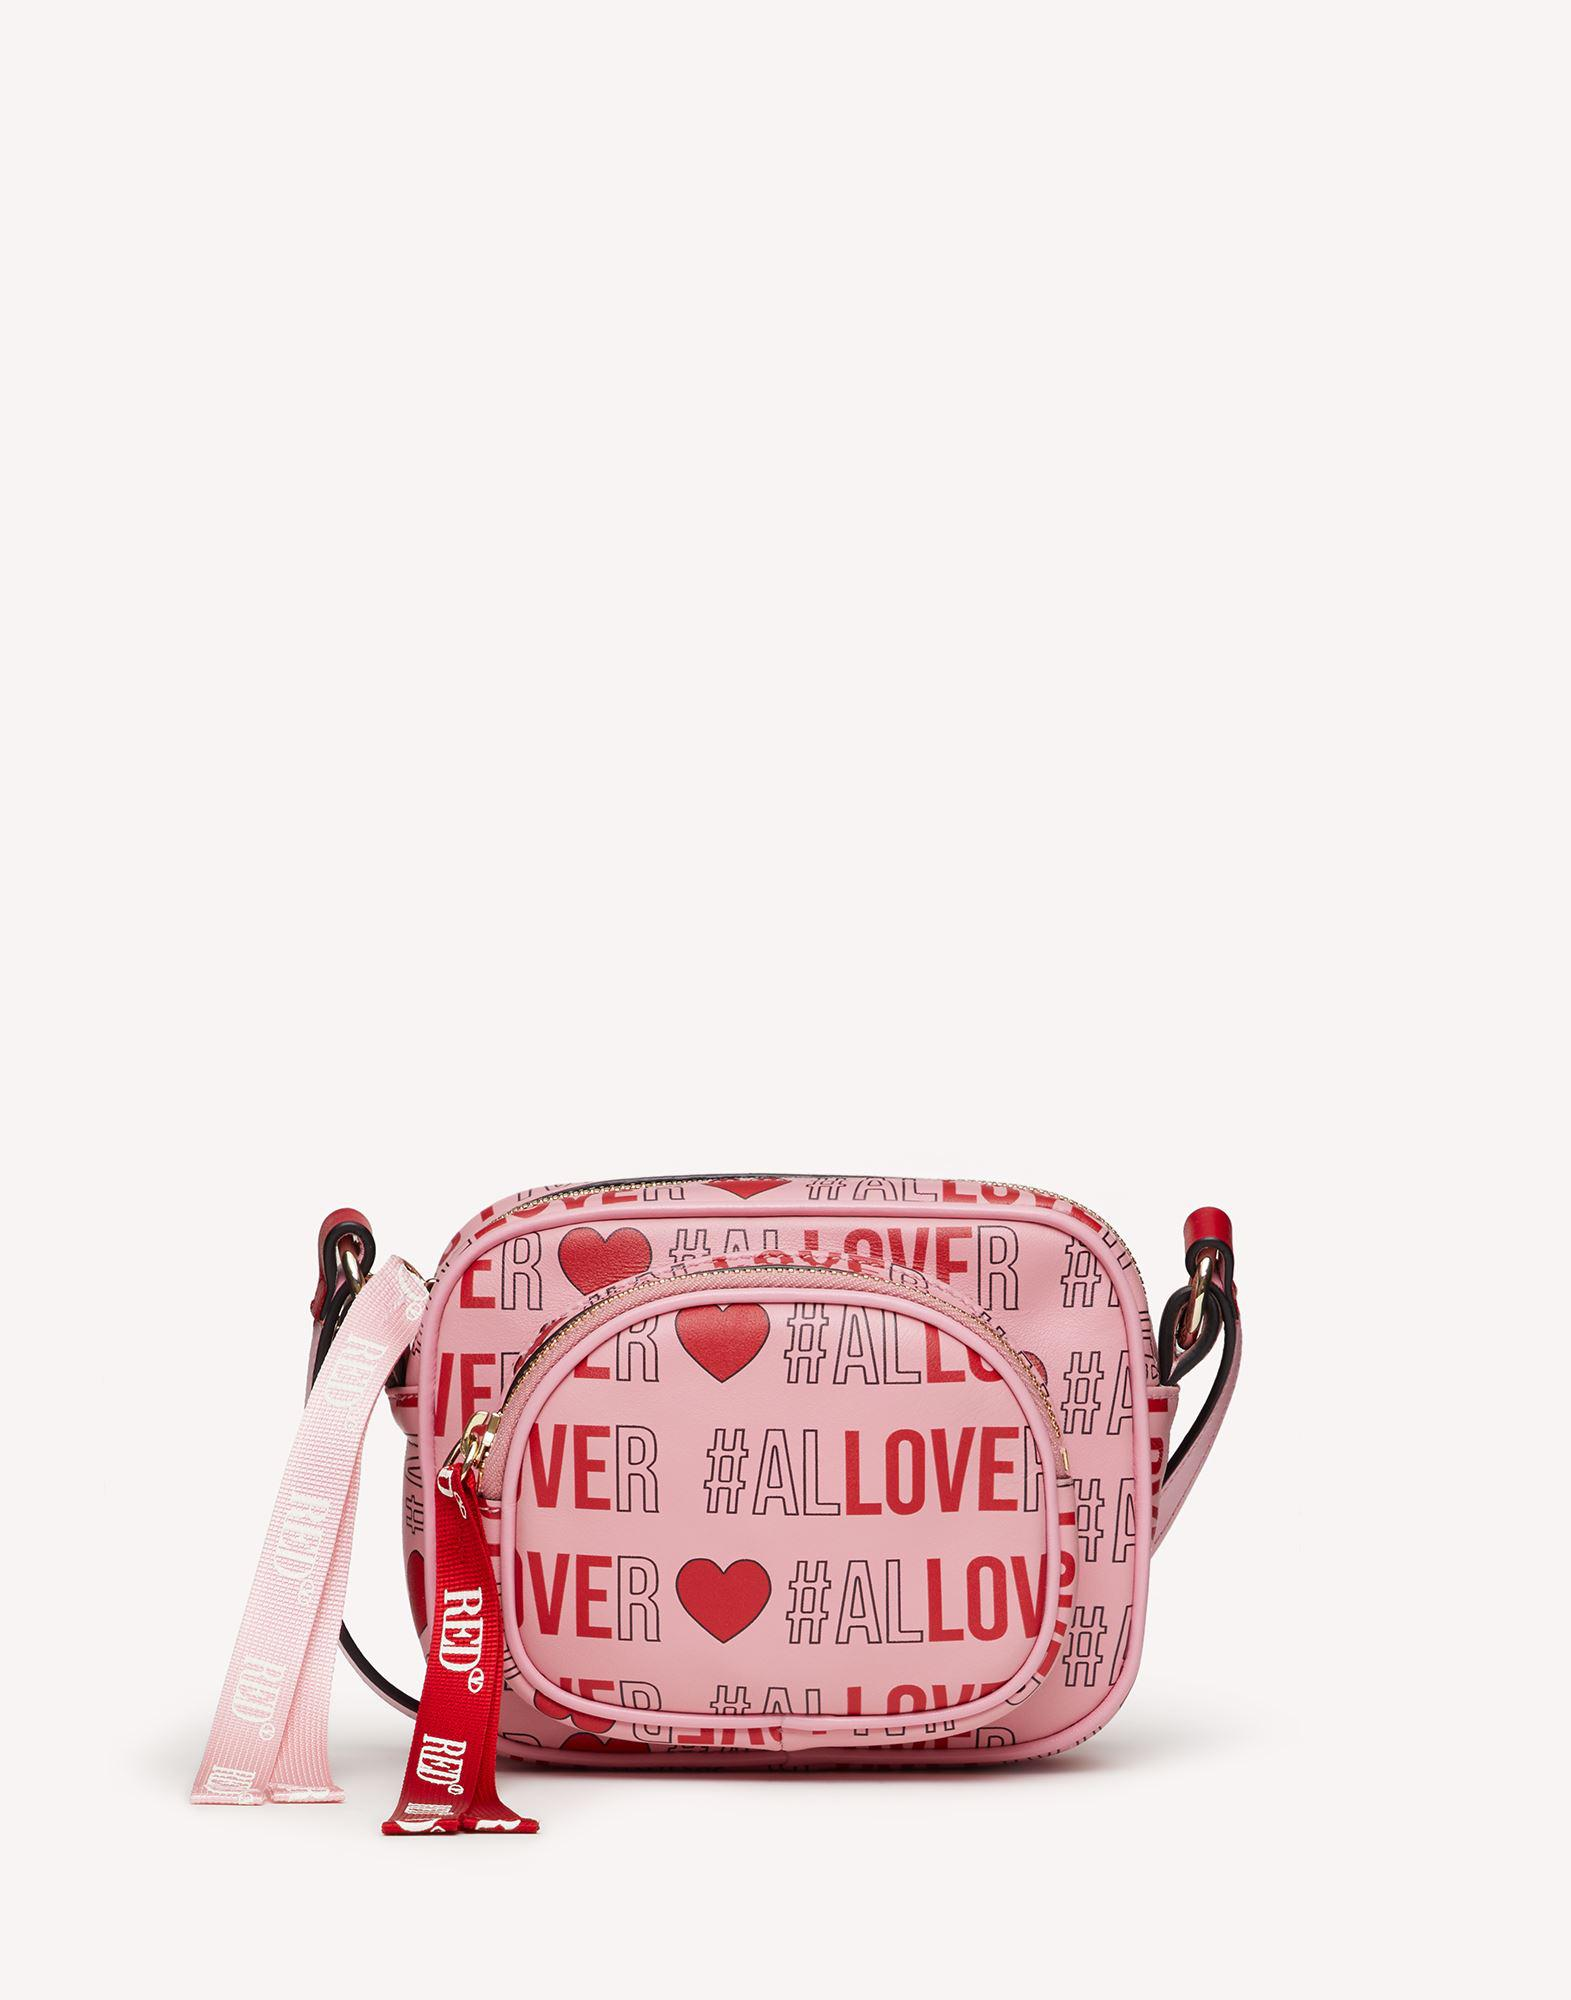 RED DOUBLE DISCO CROSSBODY BAG - LIMITED EDITION QIXI